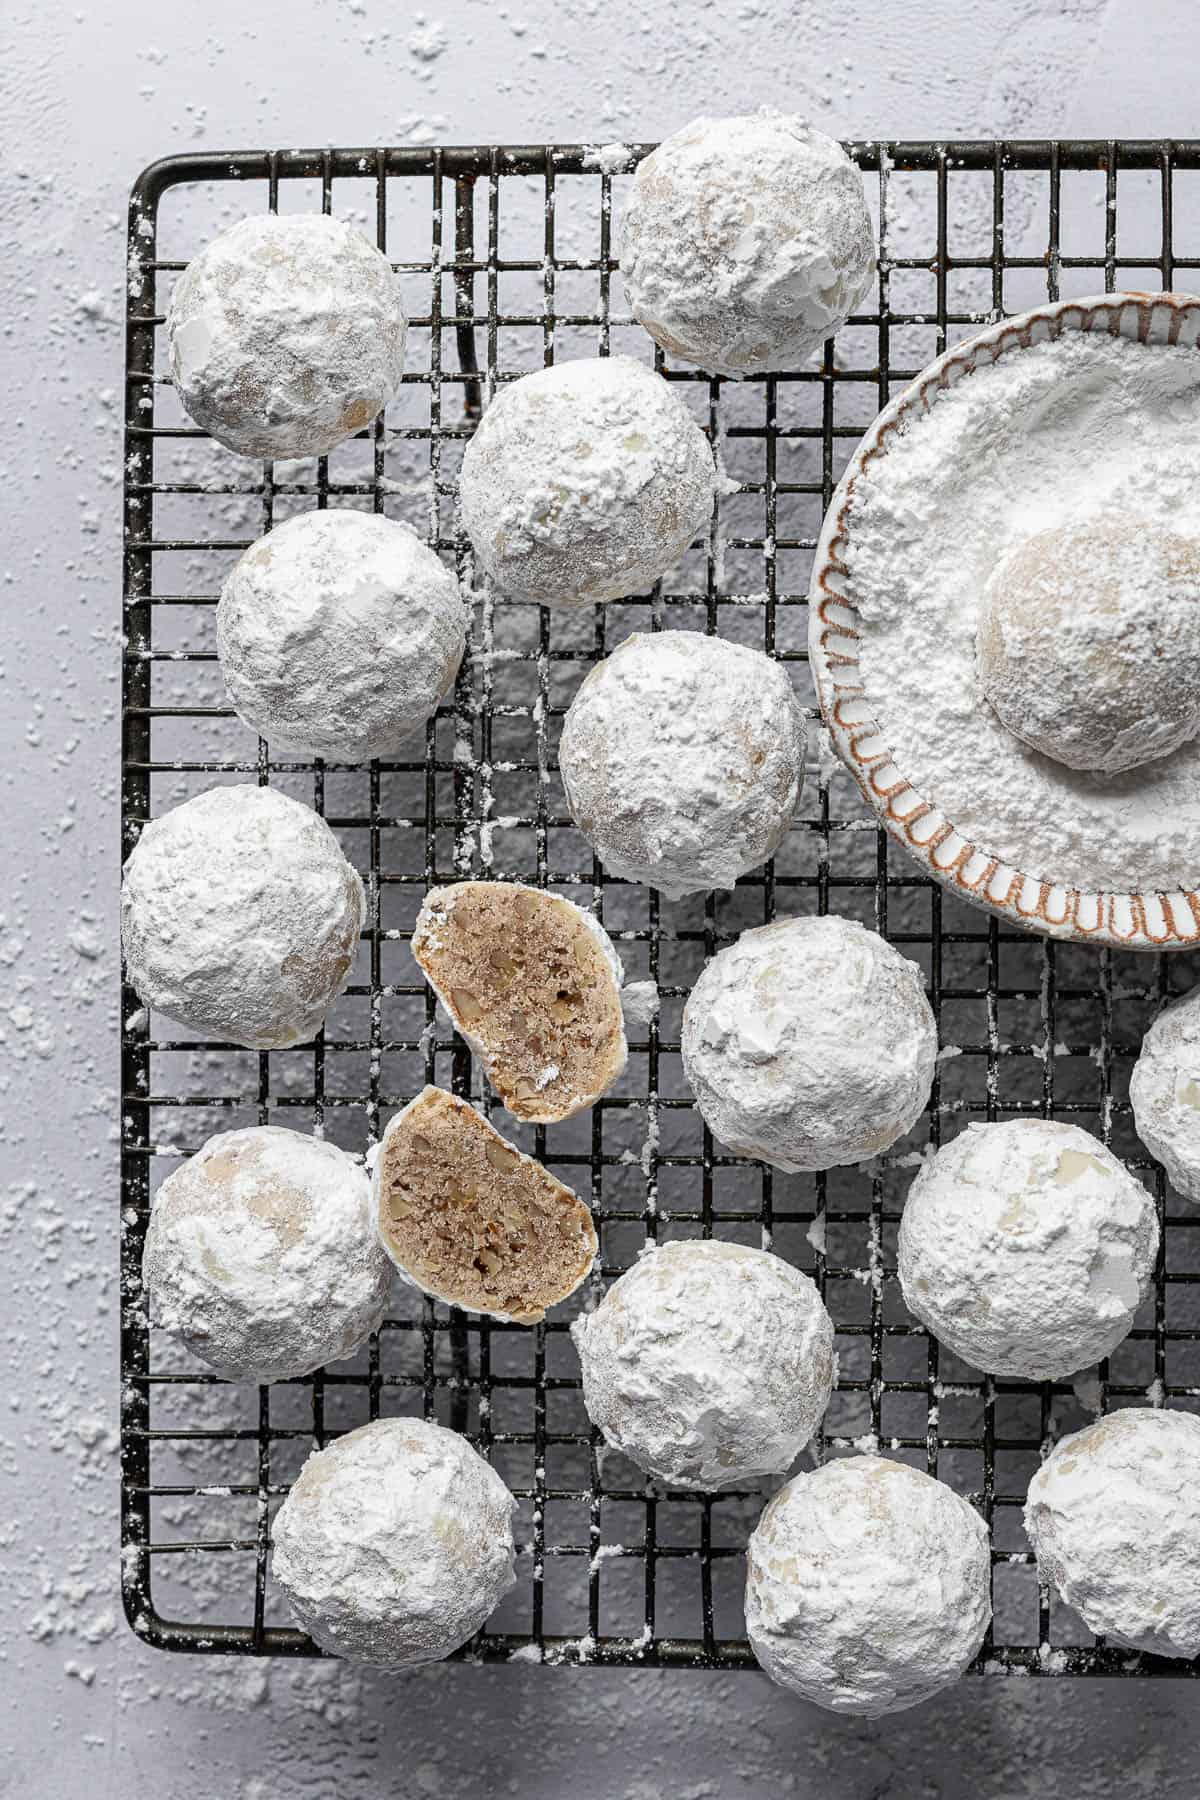 Vegan pecan snowball cookies on a wire rack with a bowl of powdered sugar, one cookie sliced in half.